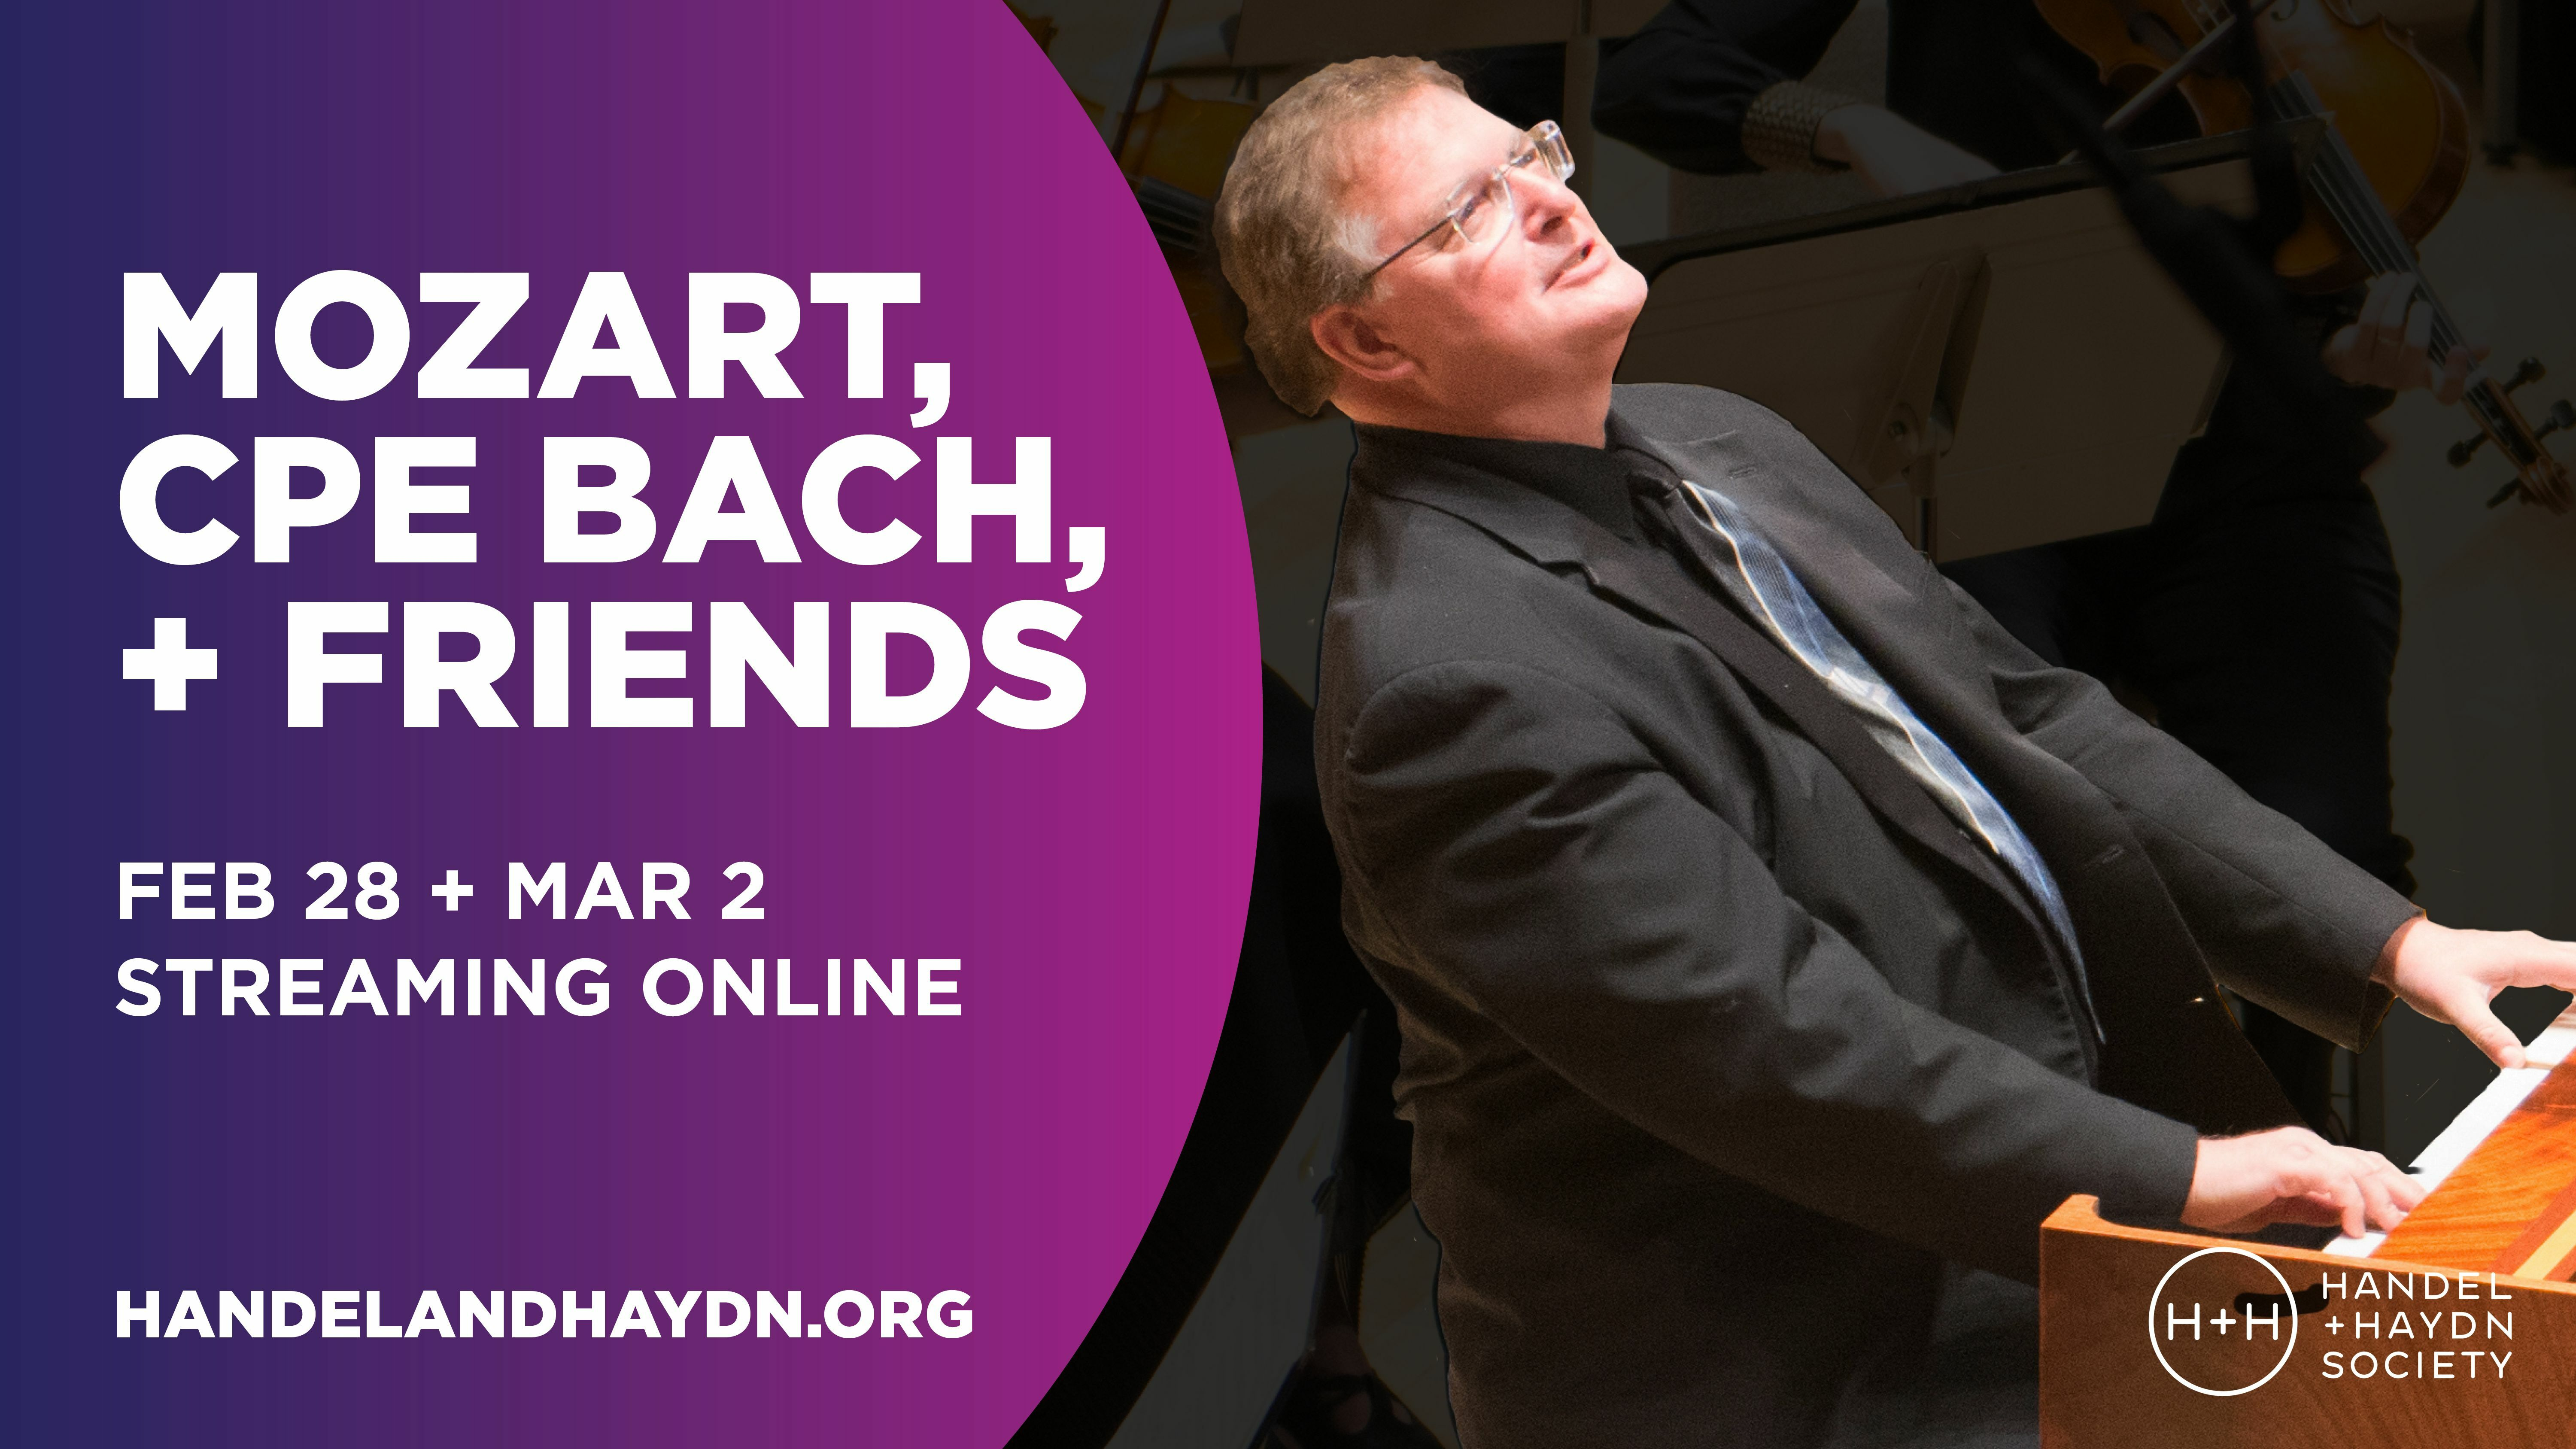 Mozart, CPE Bach, and Friends - Online